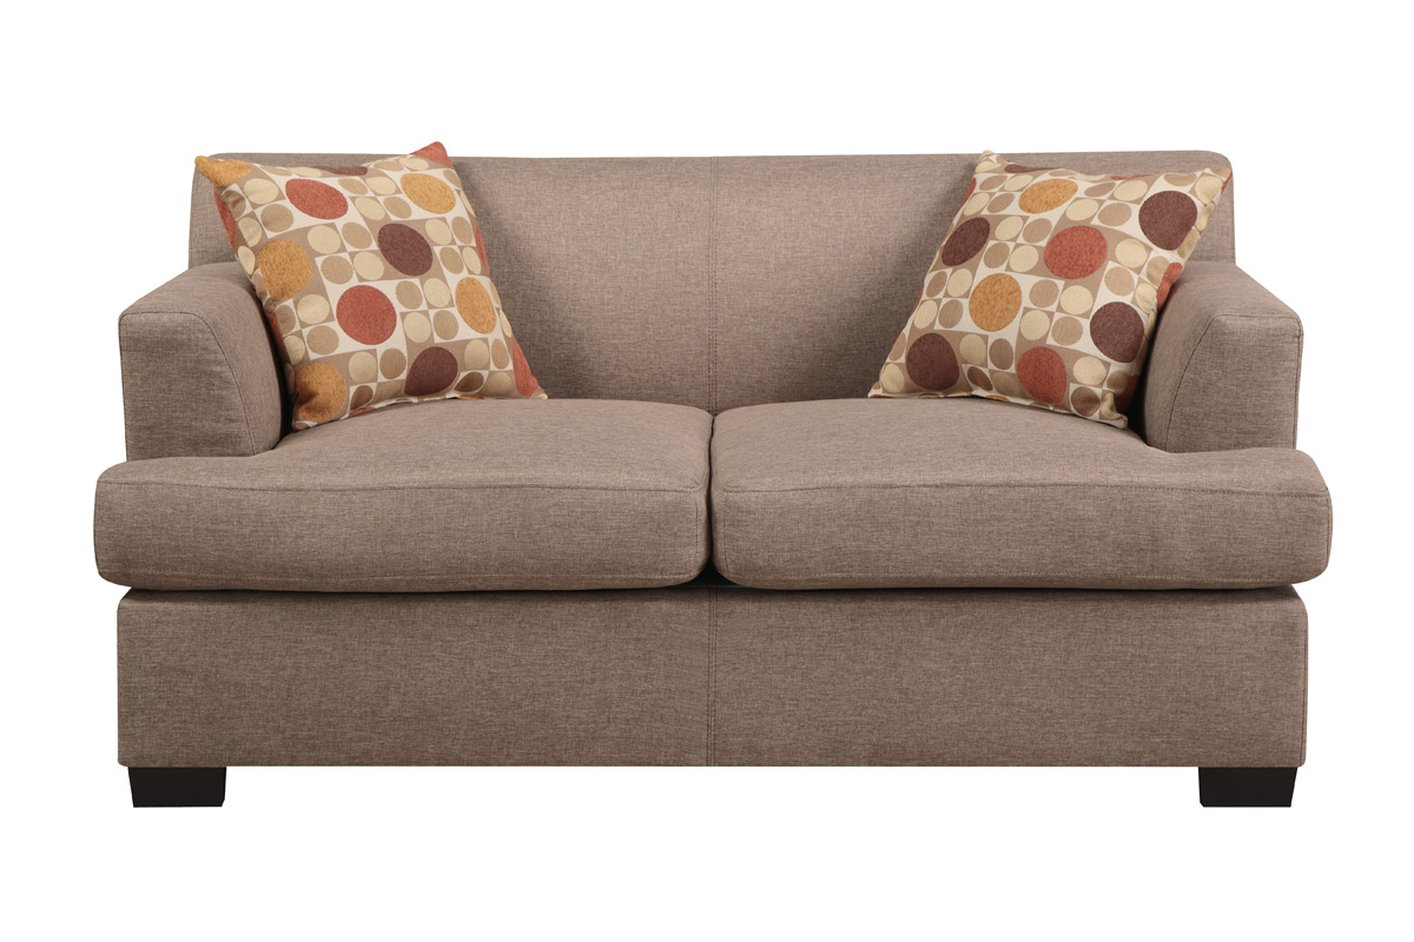 Unique Fabric Loveseats Images